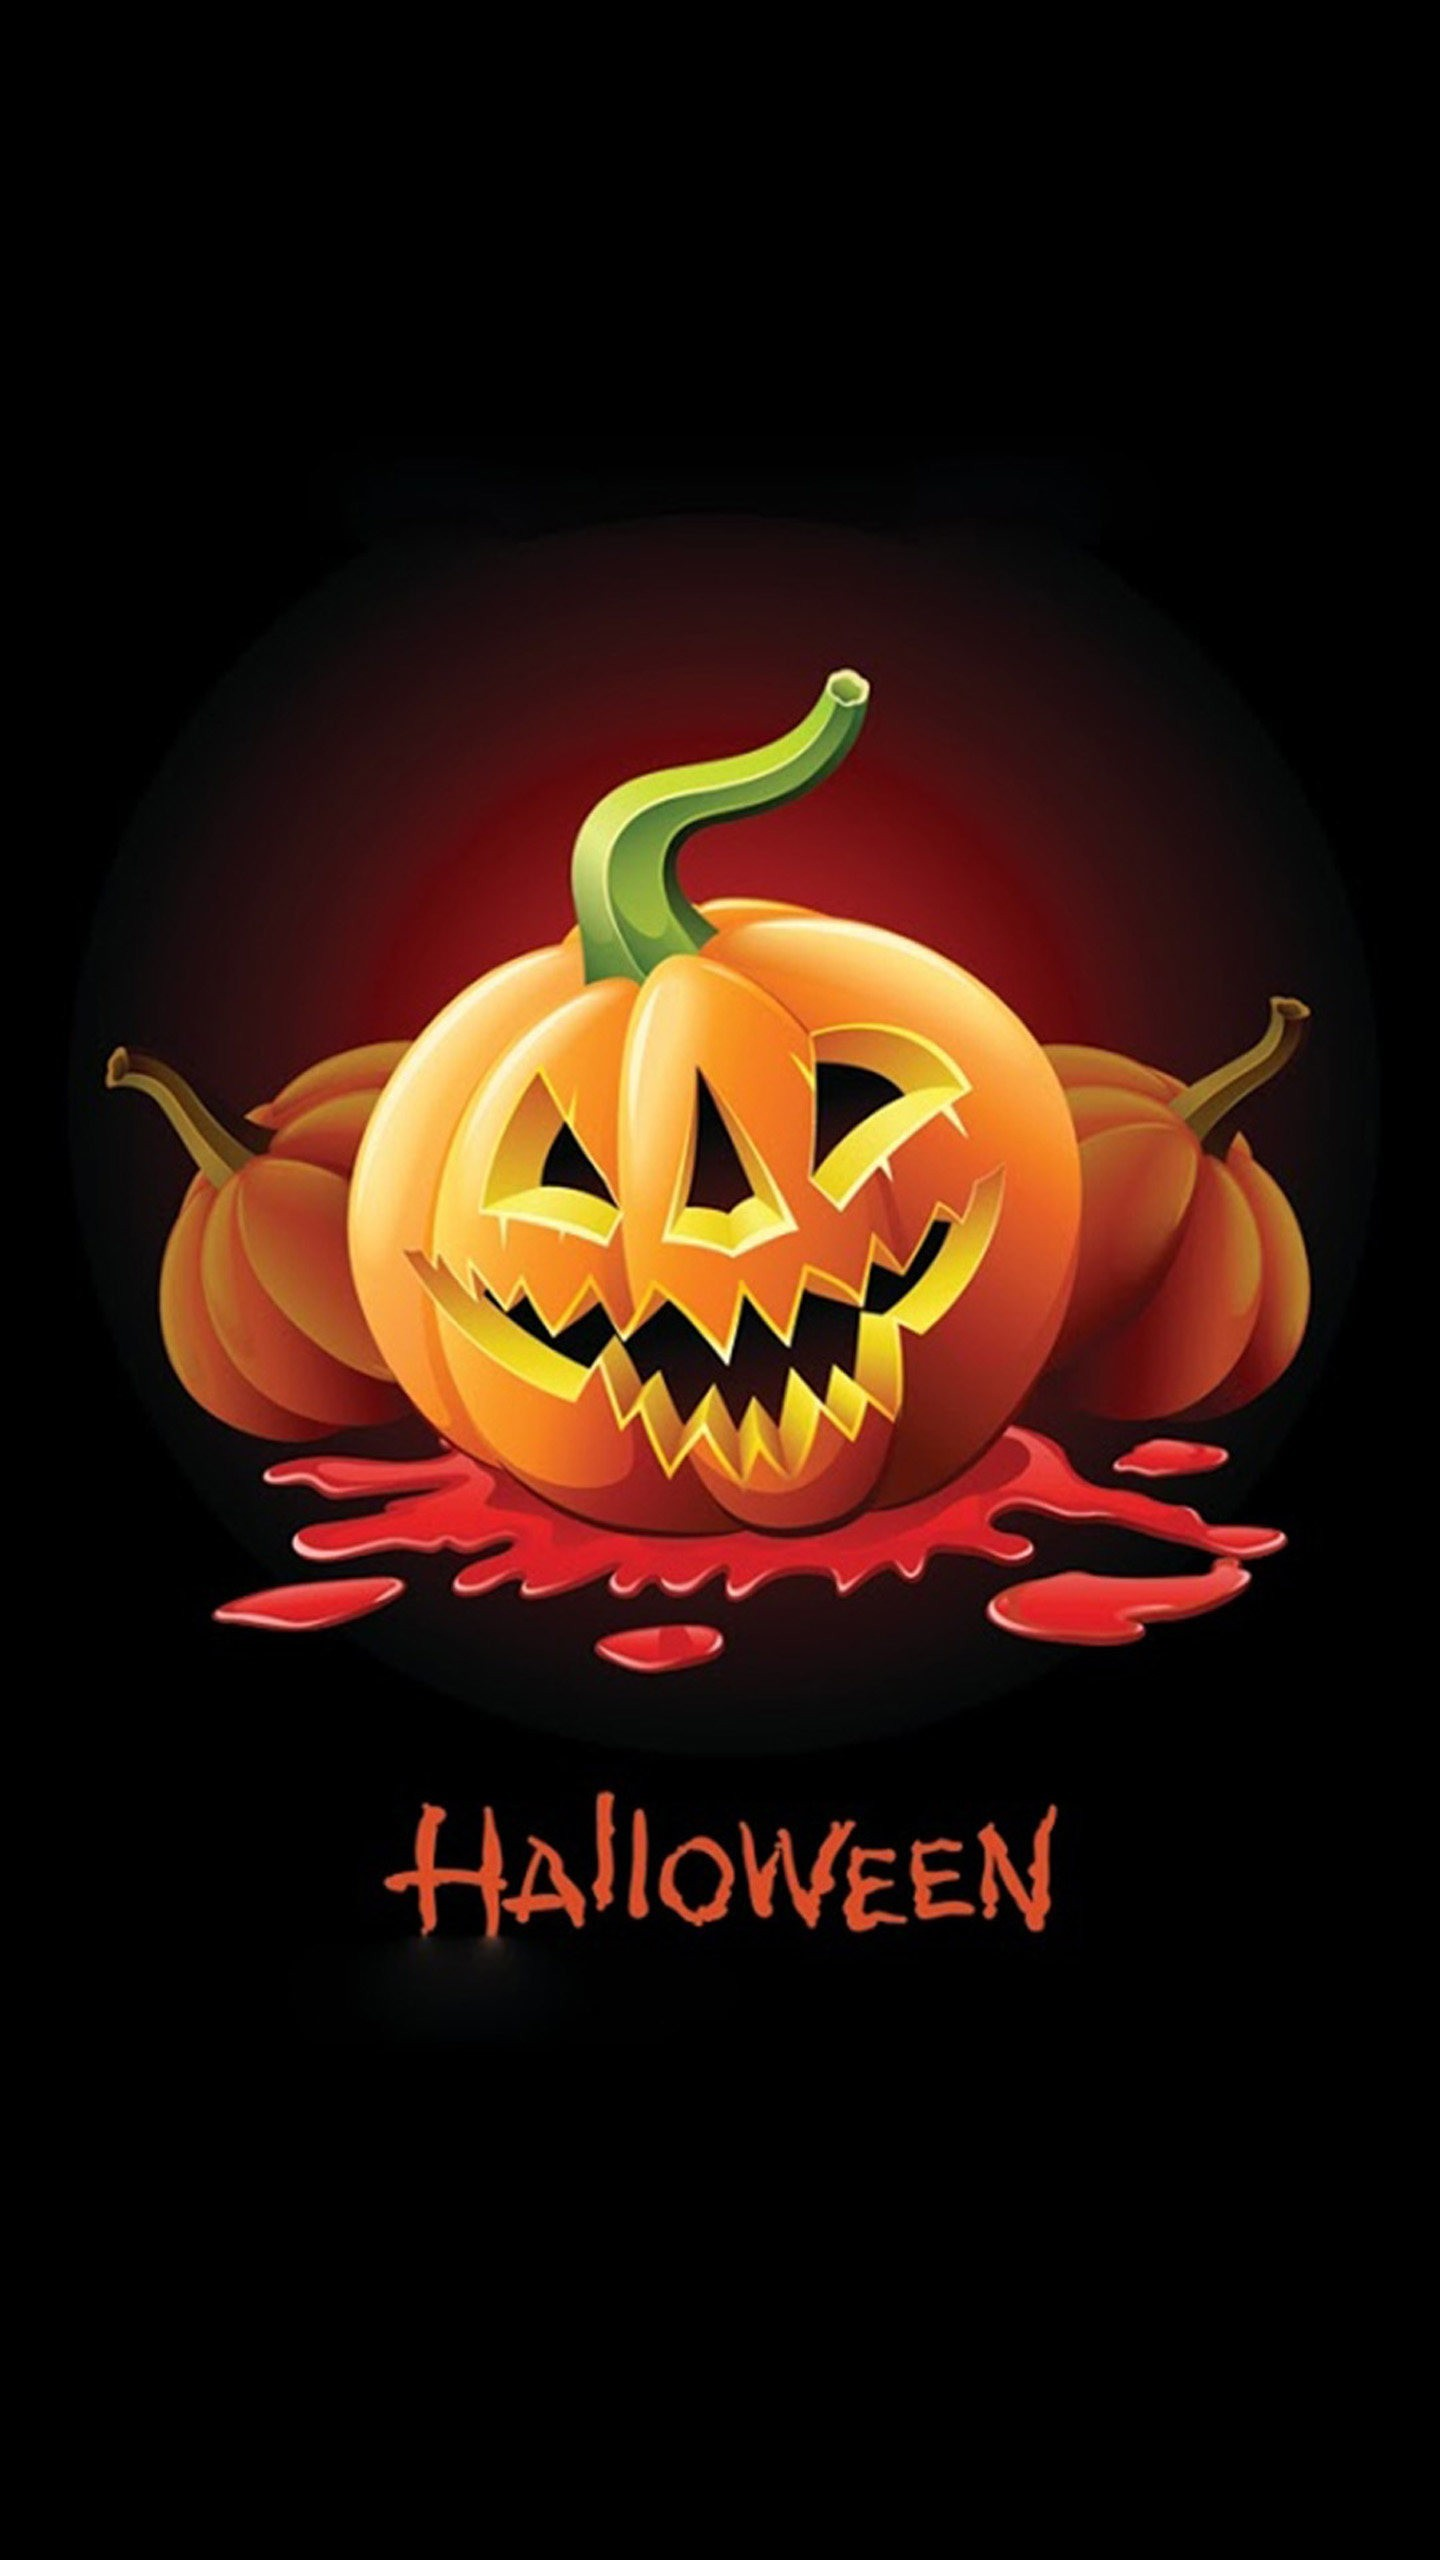 Wonderful Wallpaper Halloween Lock Screen - halloween-pumpkin-2-wallpaper-background-1440x2560  2018_528212.jpg